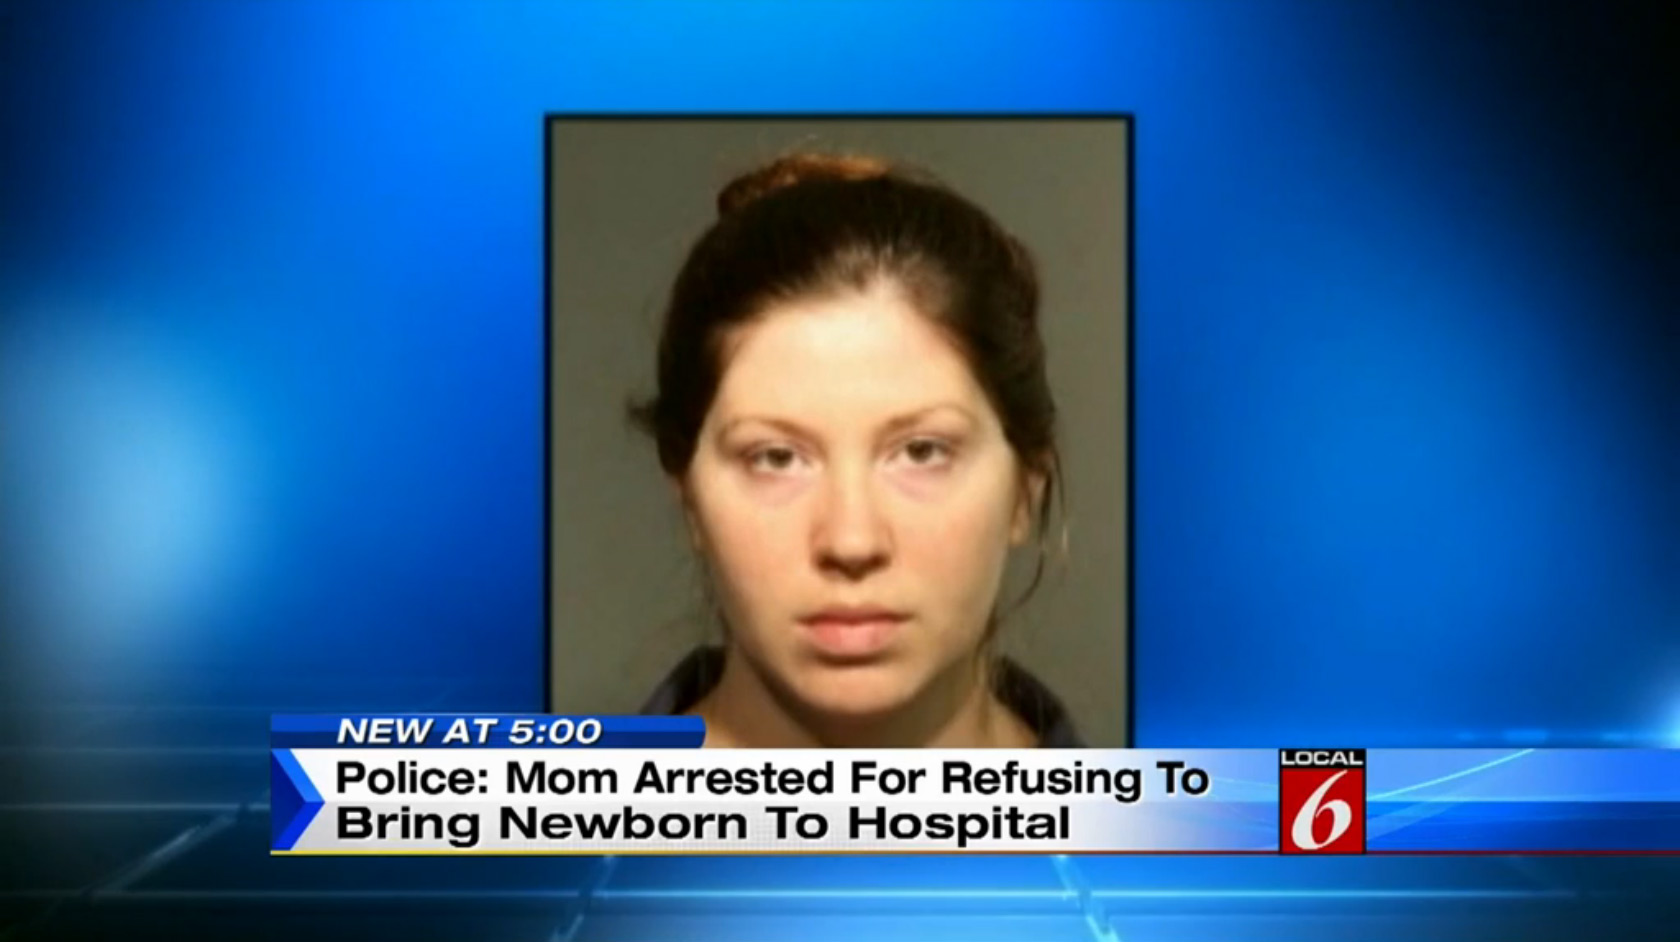 Mother arrested for child neglect   Sheknows.com